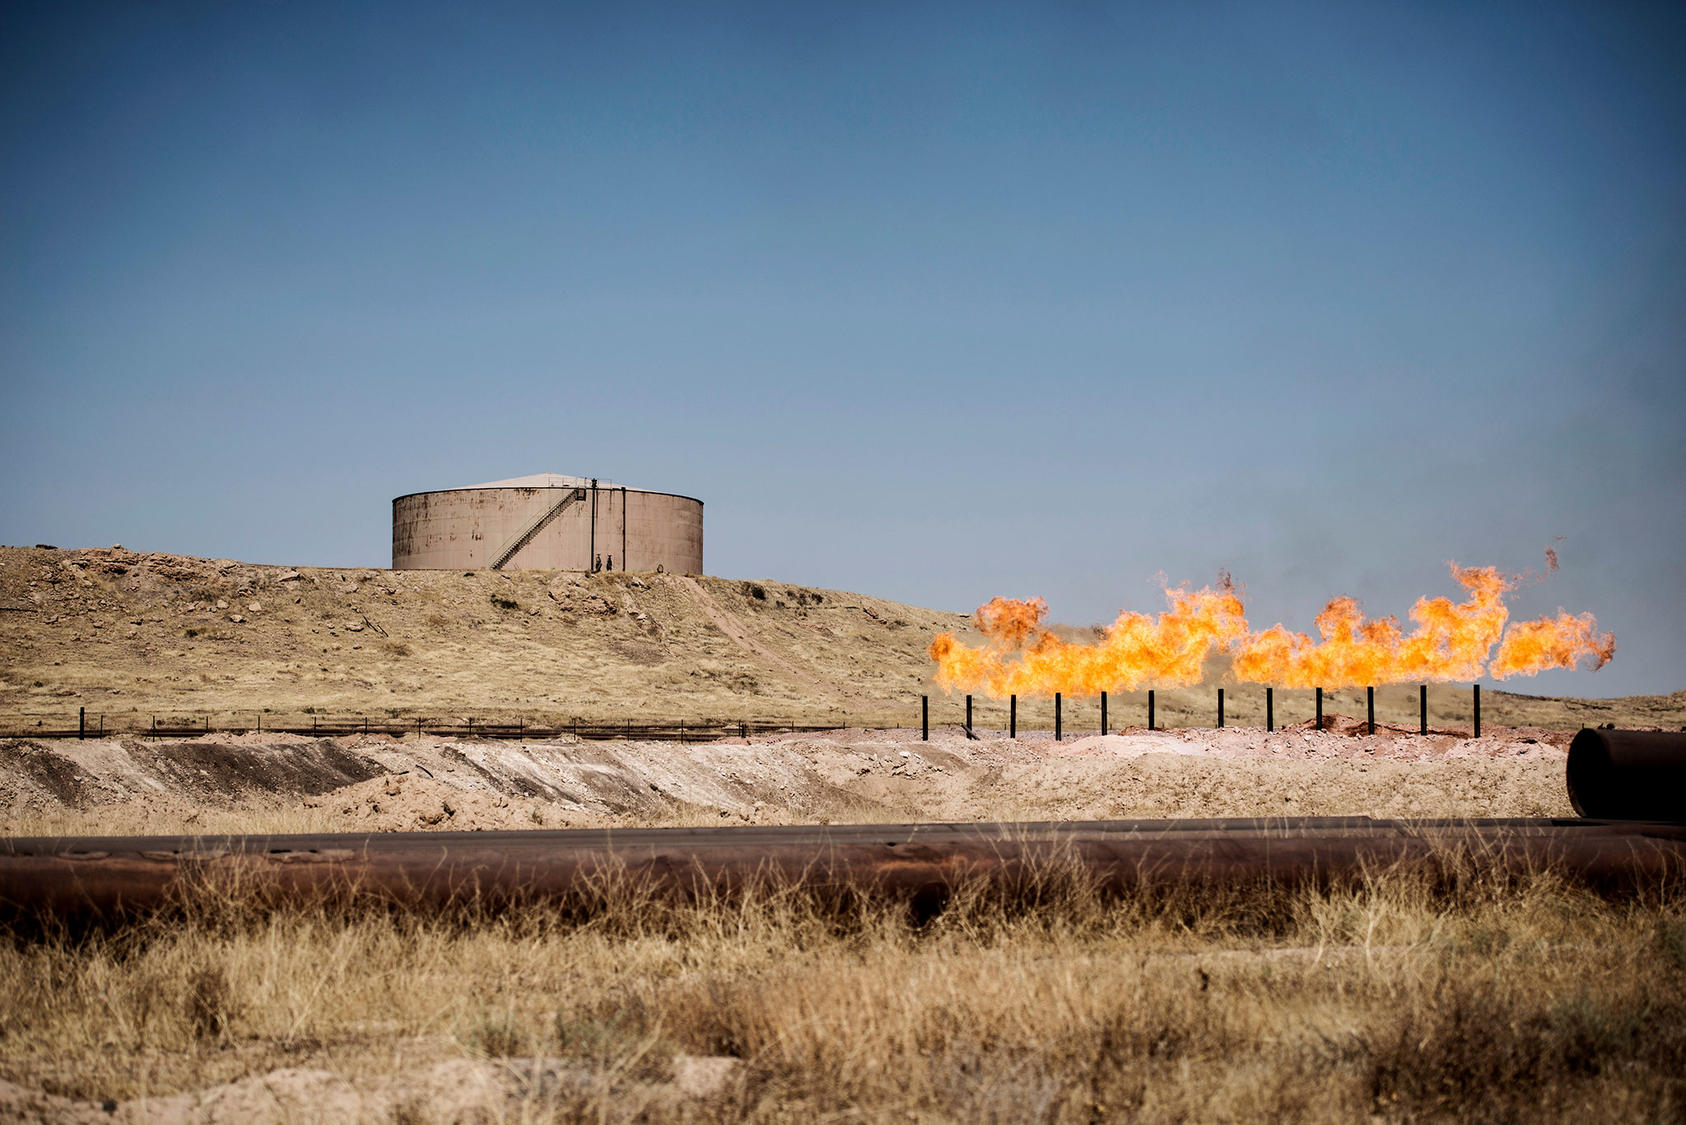 A gas flare burns near storage tanks in the oil fields near Kirkuk, Iraq